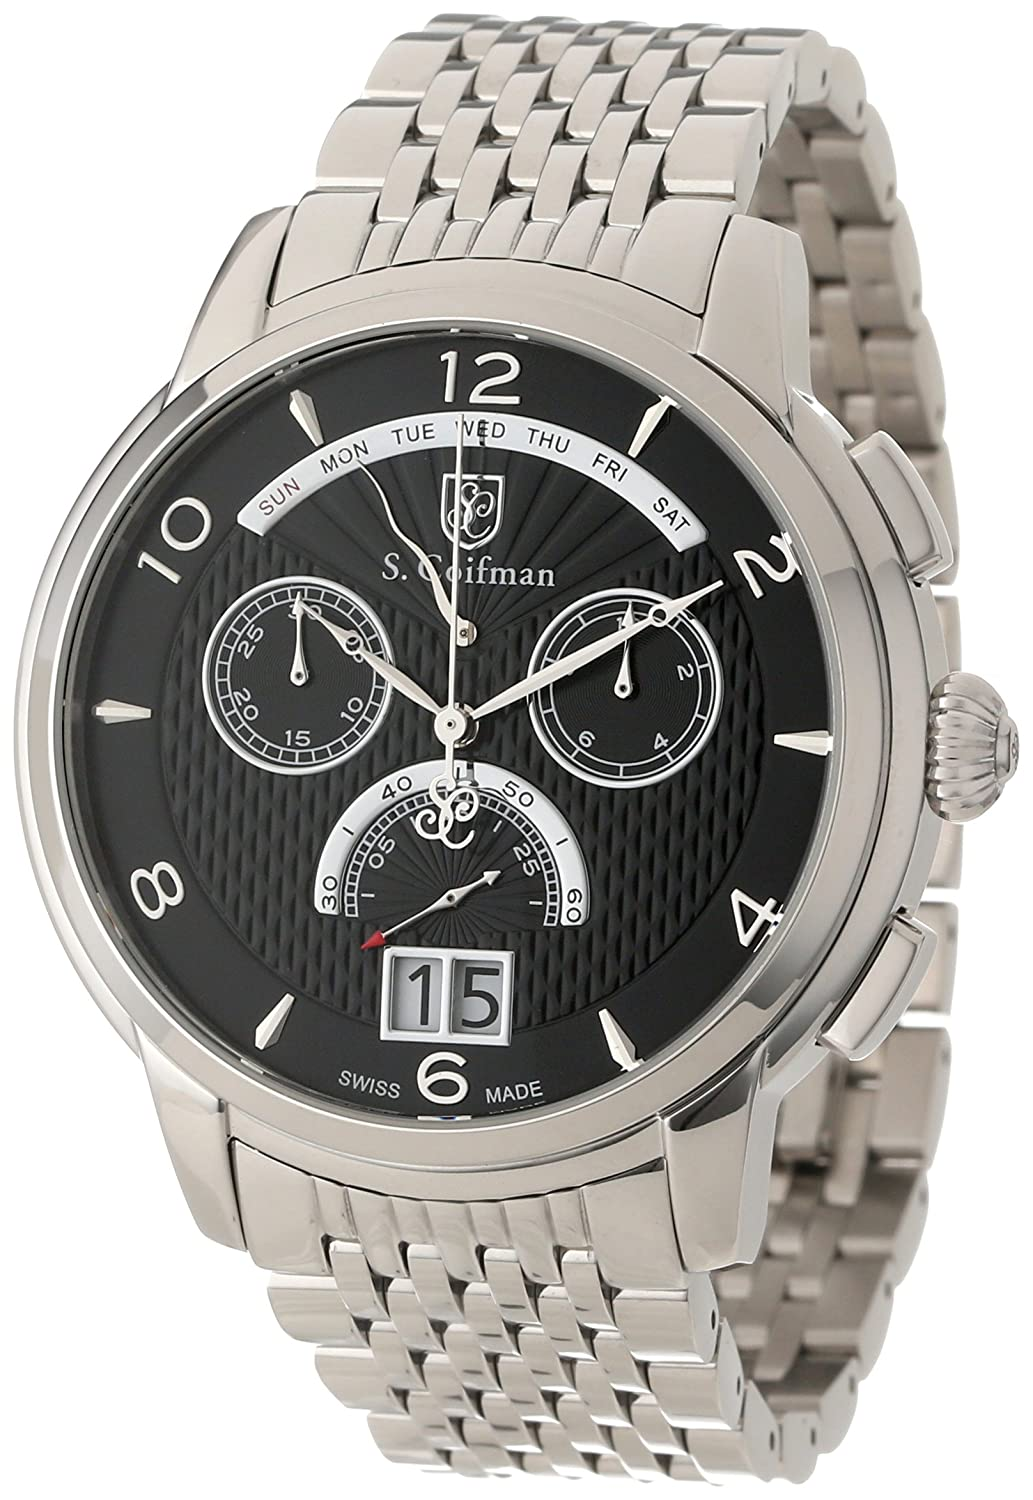 Amazon.com: S. Coifman Mens SC0184 Chronograph Black Textured Dial Stainless Steel Watch: Invicta: Watches